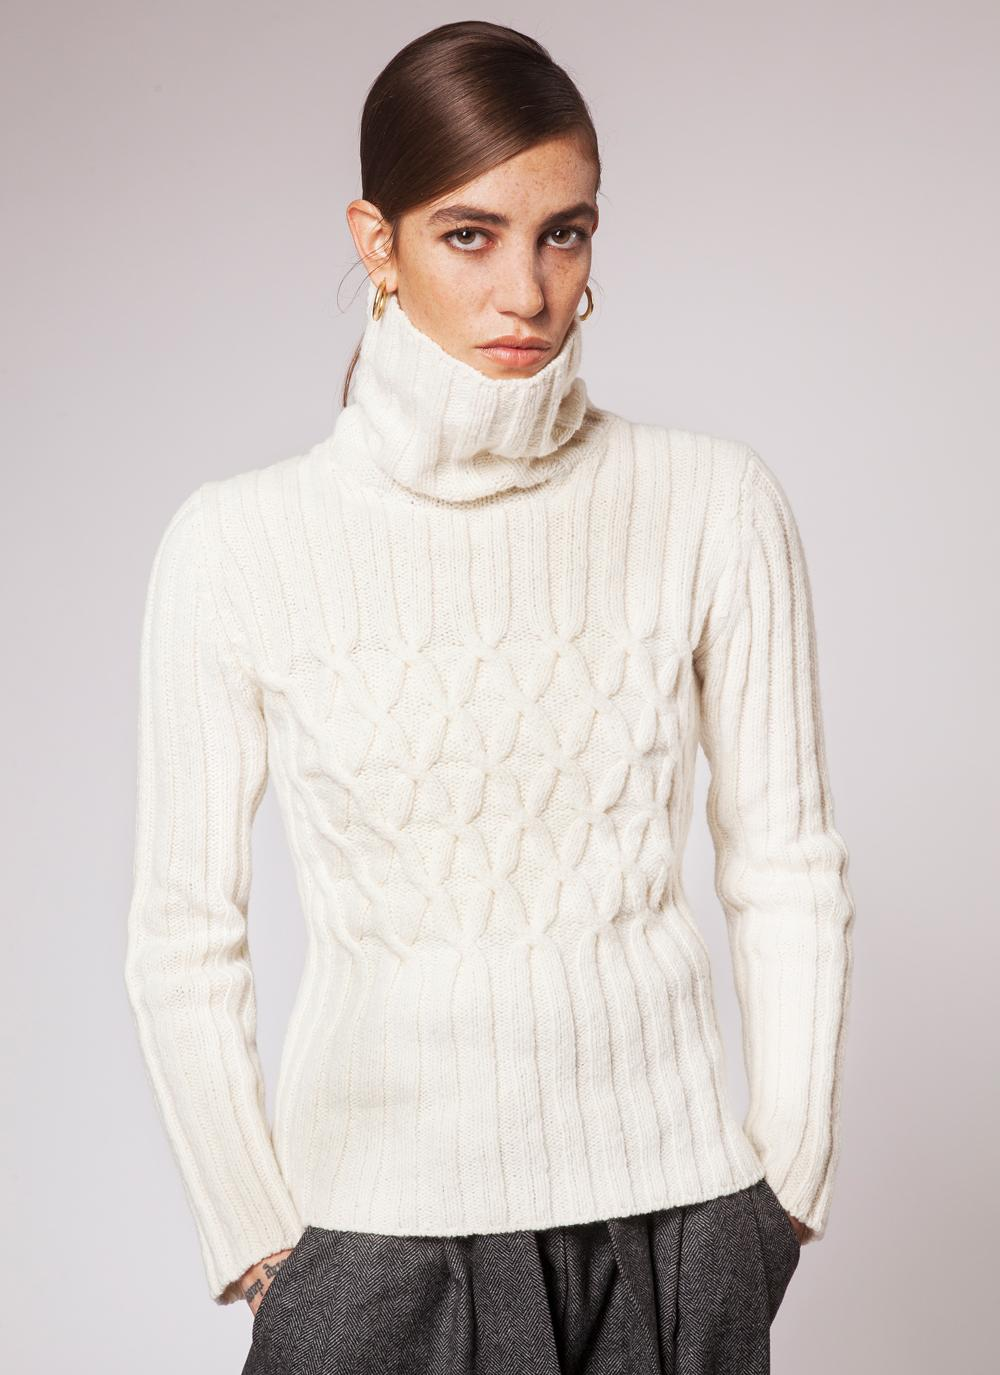 Fisherman Criss Cross Rib Polo Sweater